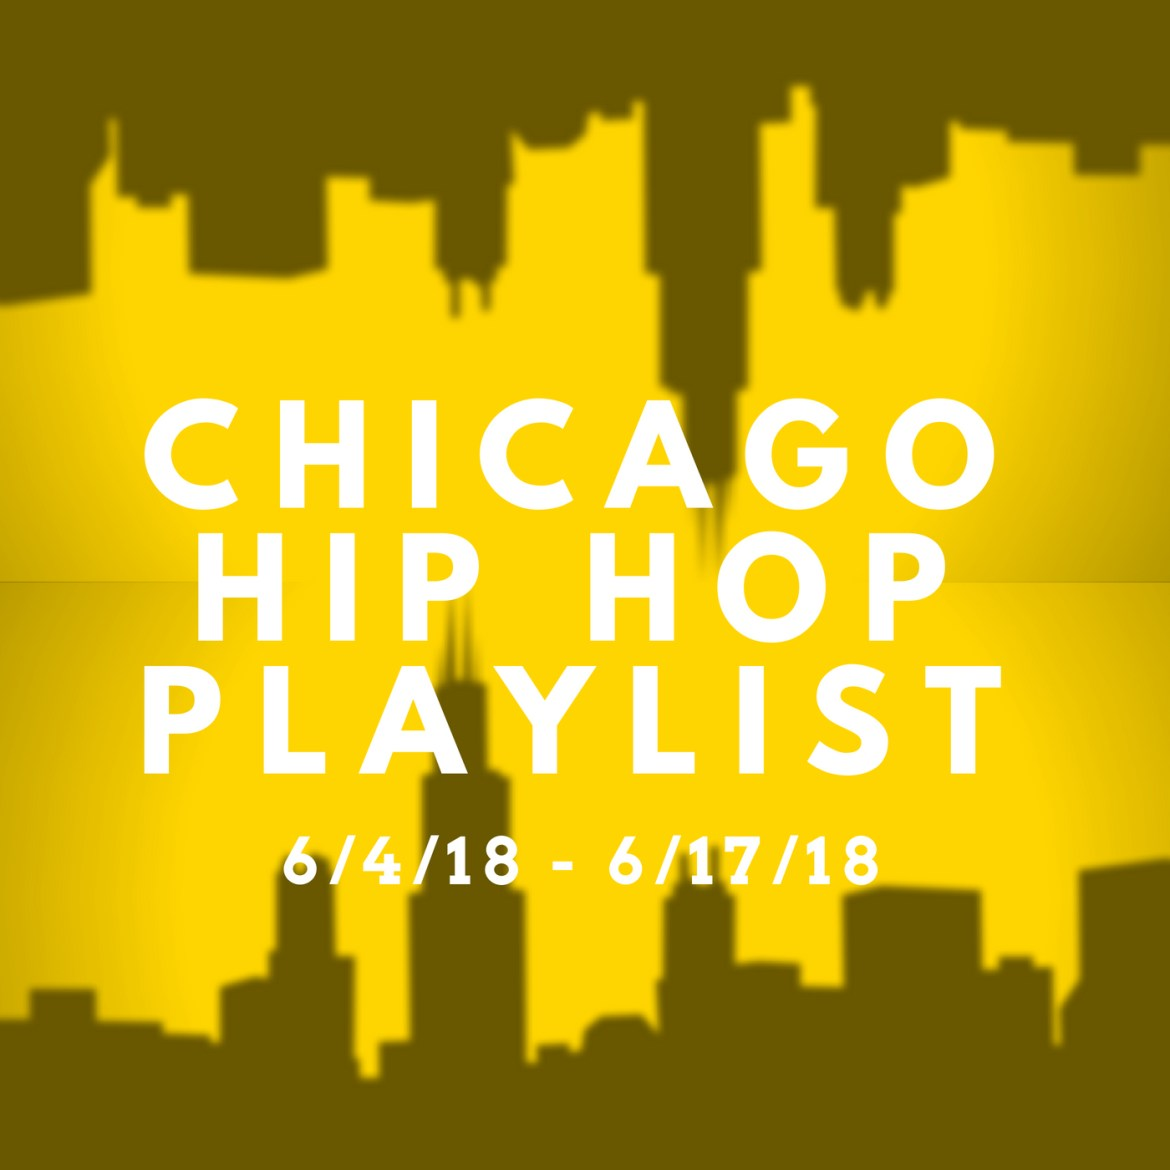 Chicago Hip Hop Playlist: 6/4/18-6/17/18